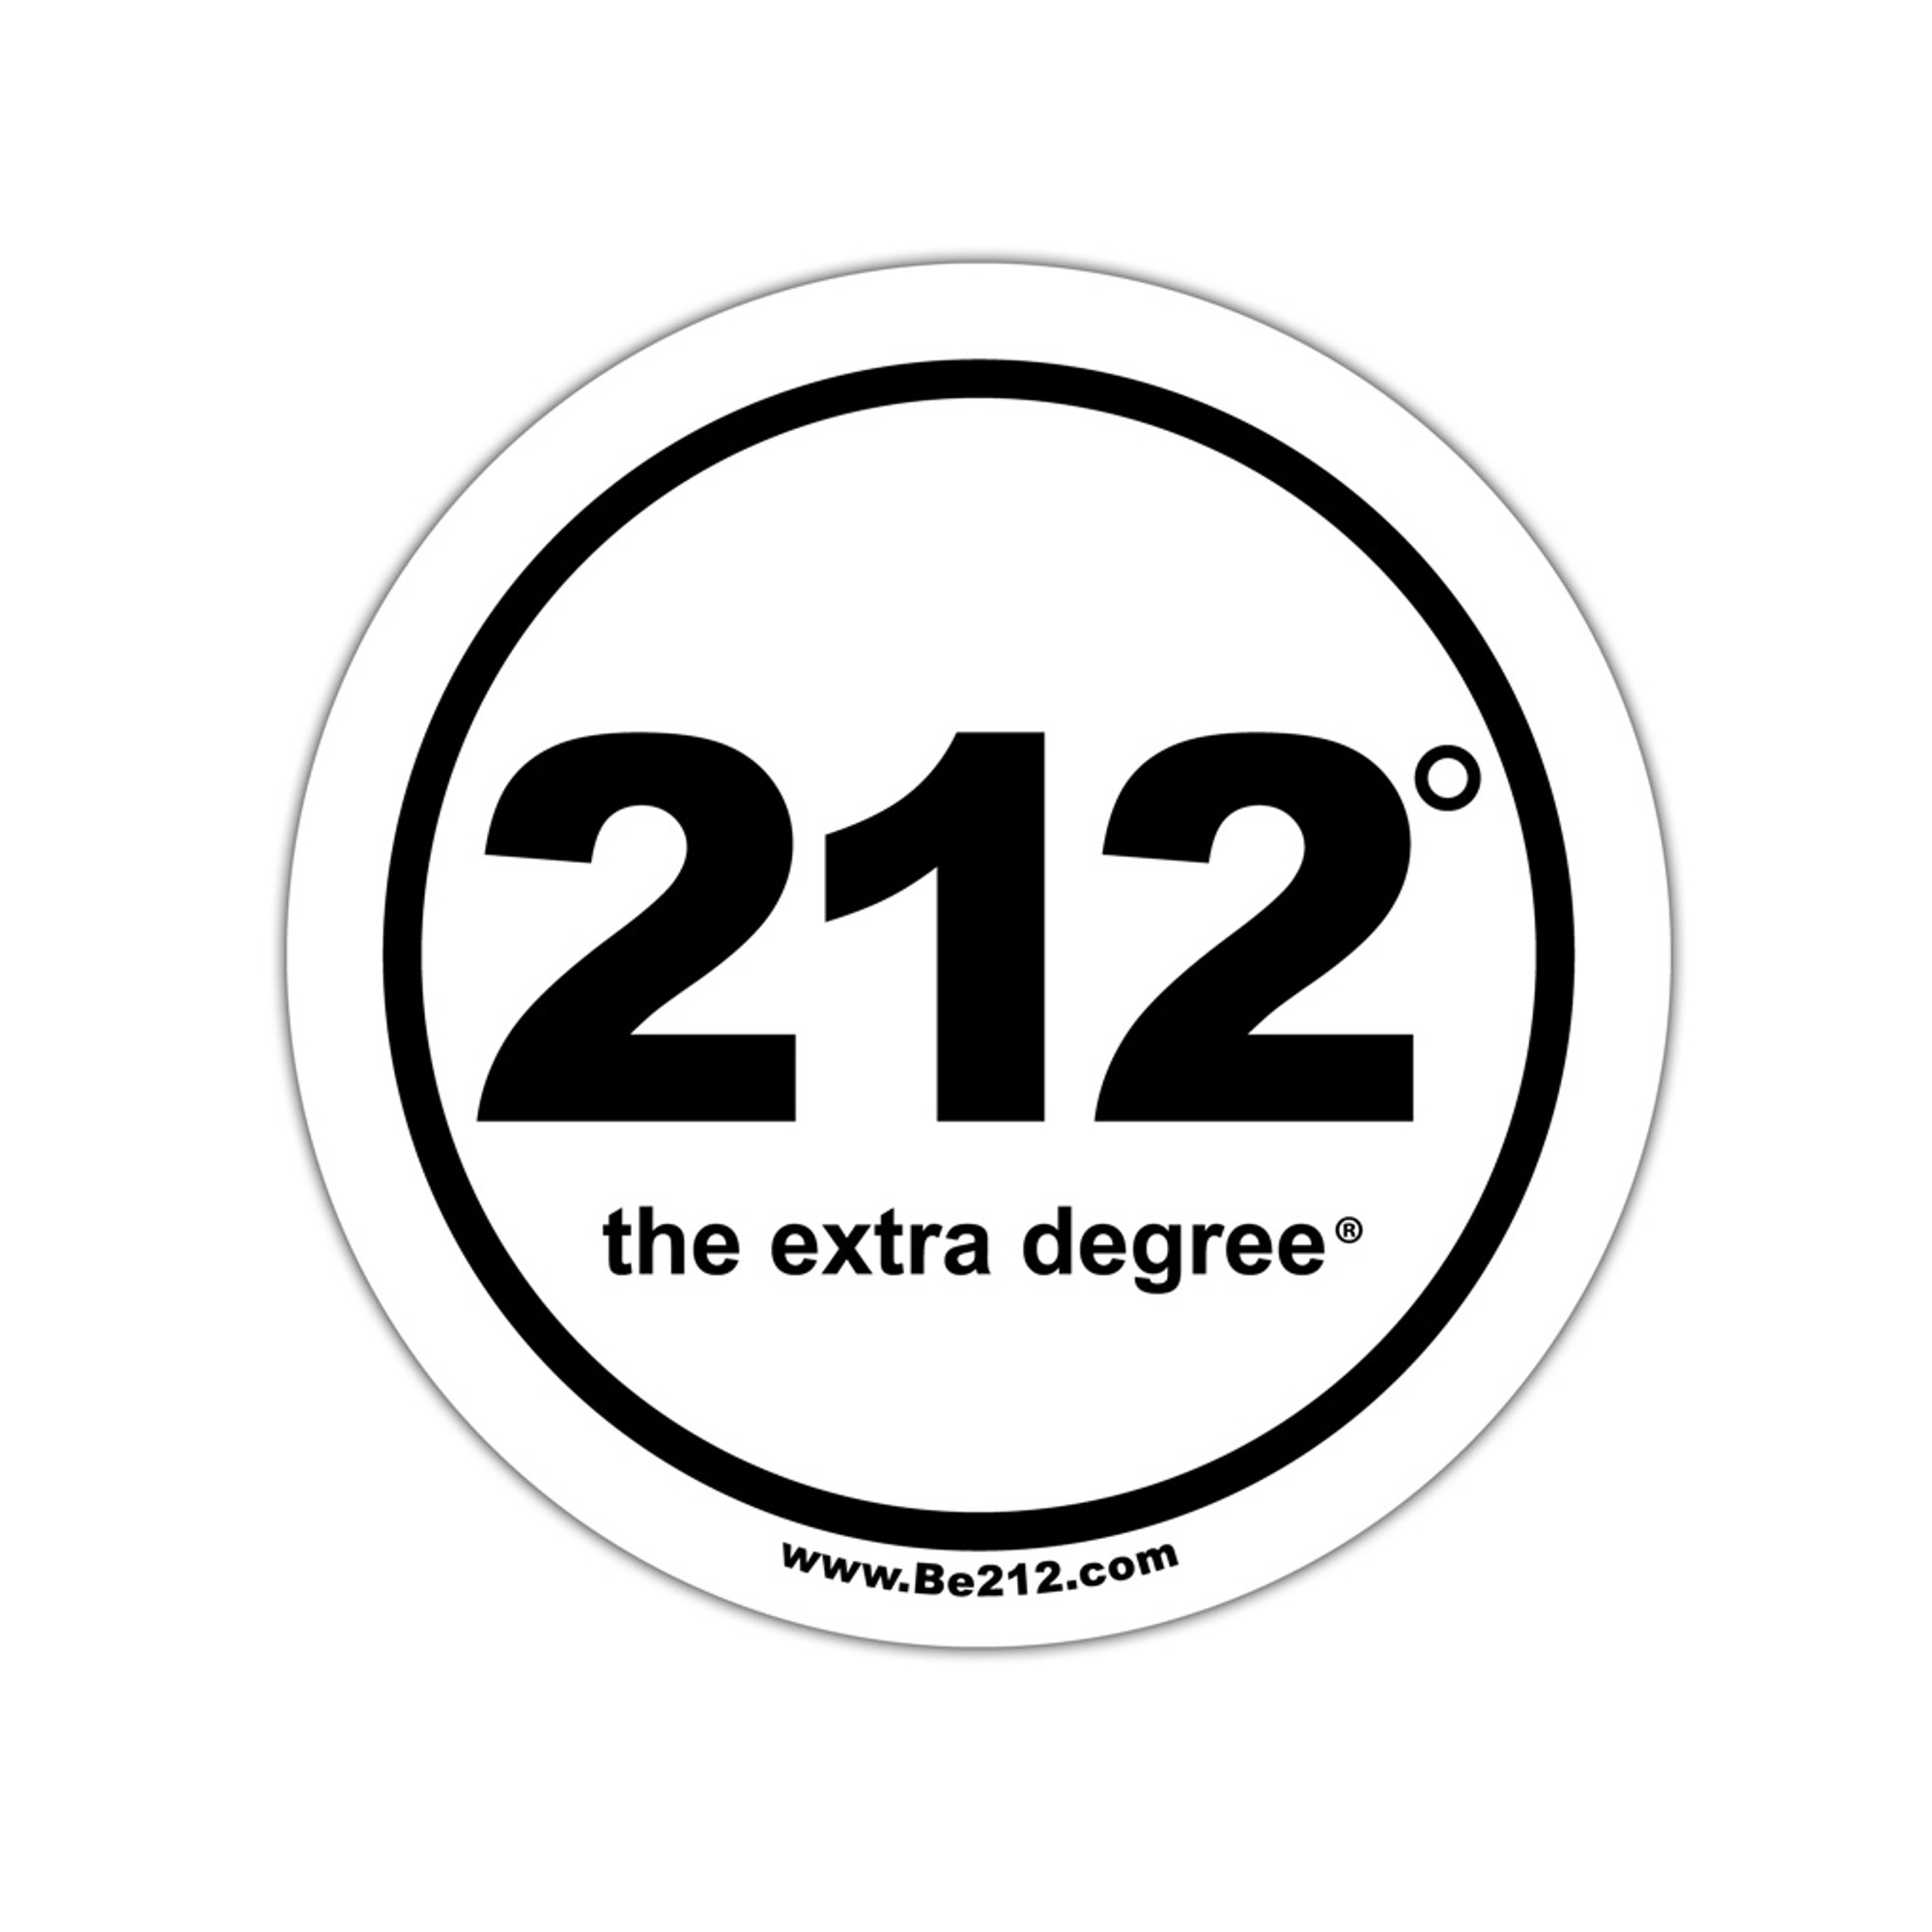 212 stickers large official logo inspireyourpeople com